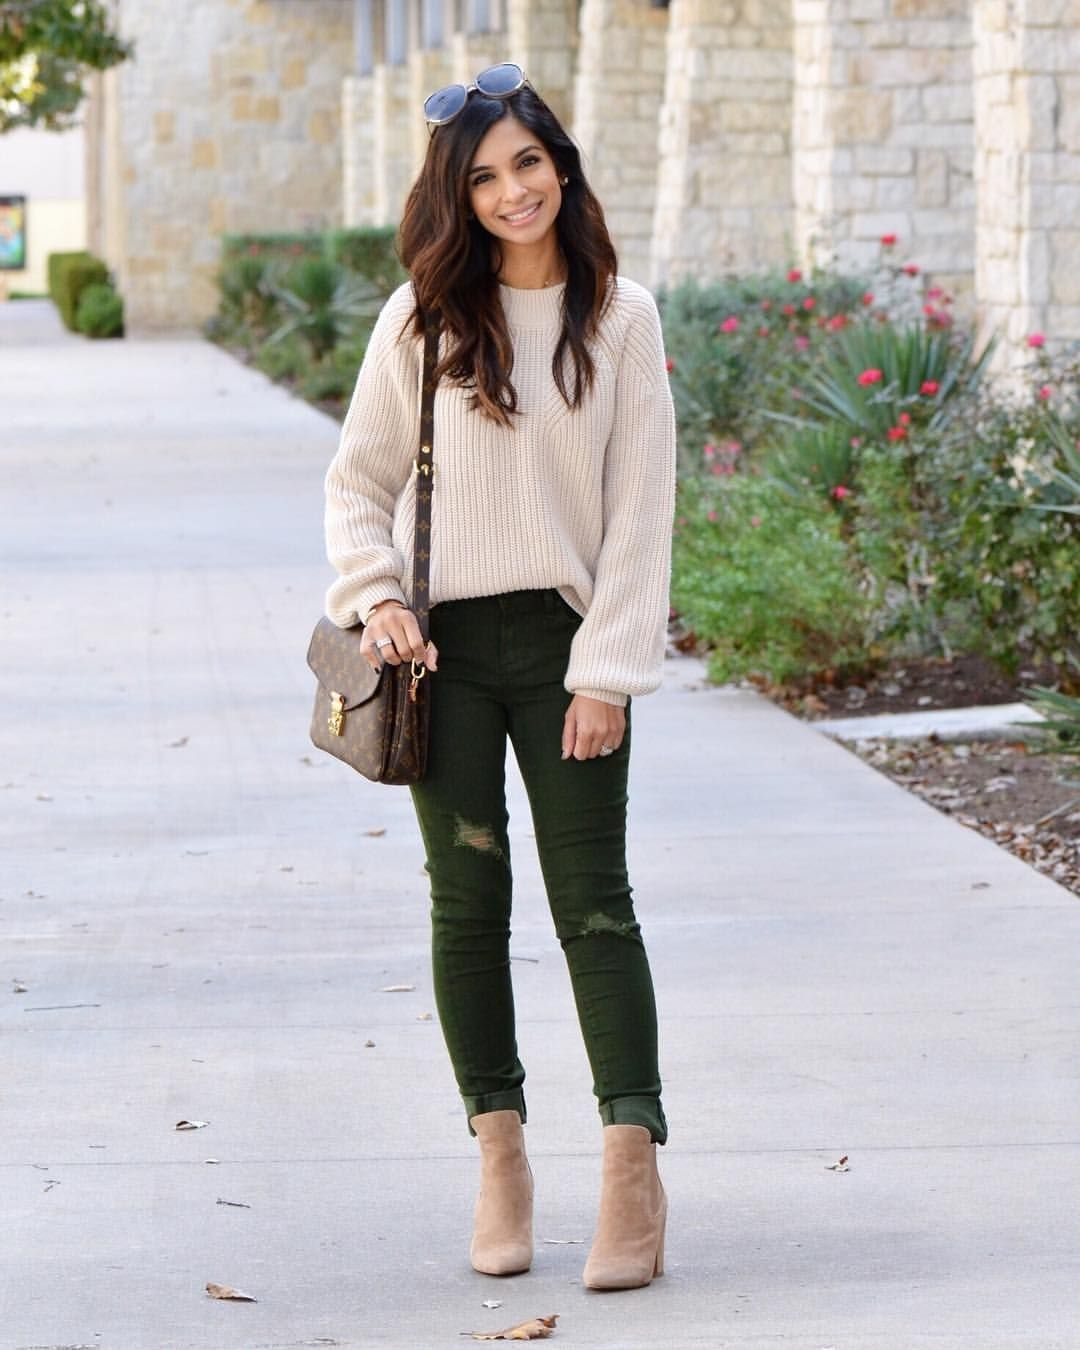 pin meghan huynh on ootd fashion style sweaters